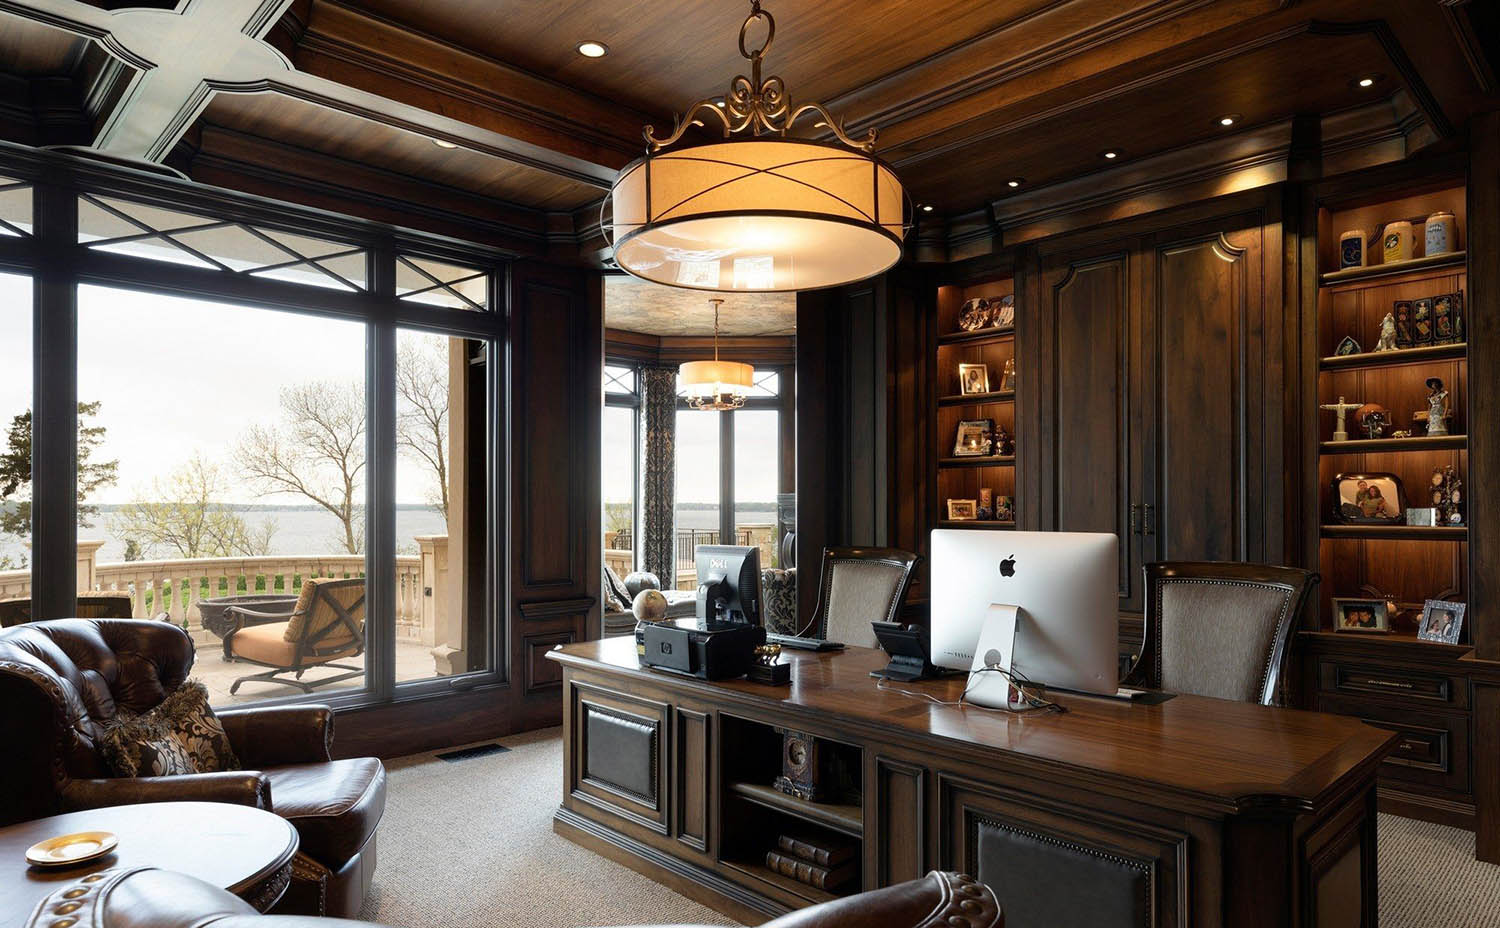 All dark wood office with wood wall paneling and wood ceiling. Matching wood desk. Tan carpeting. Large windows let in tons of natural light.